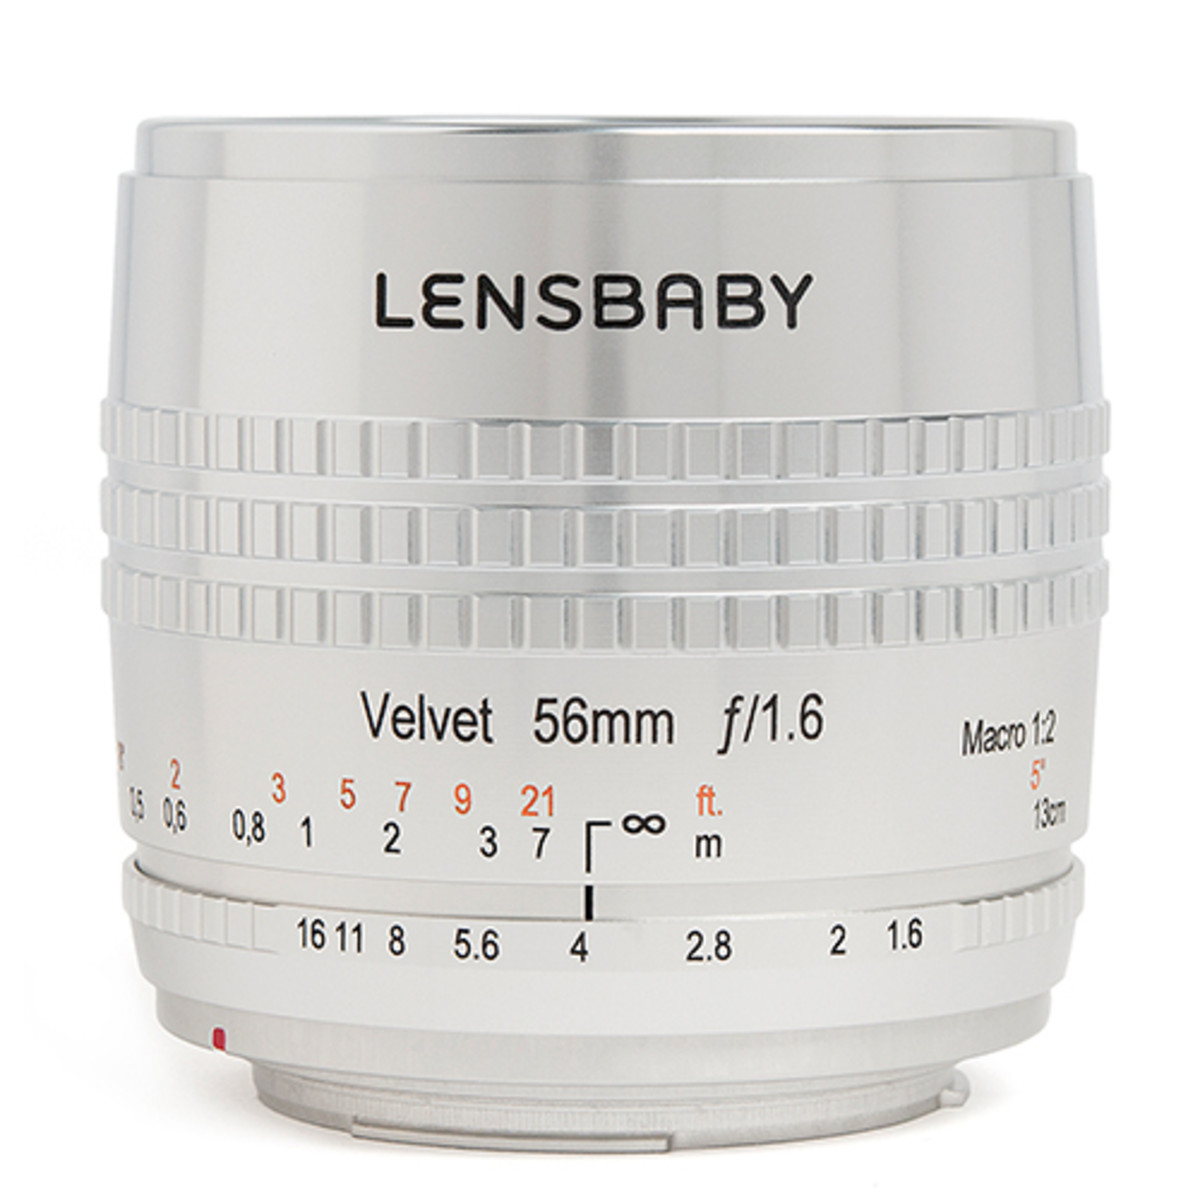 Photos: Lensbaby